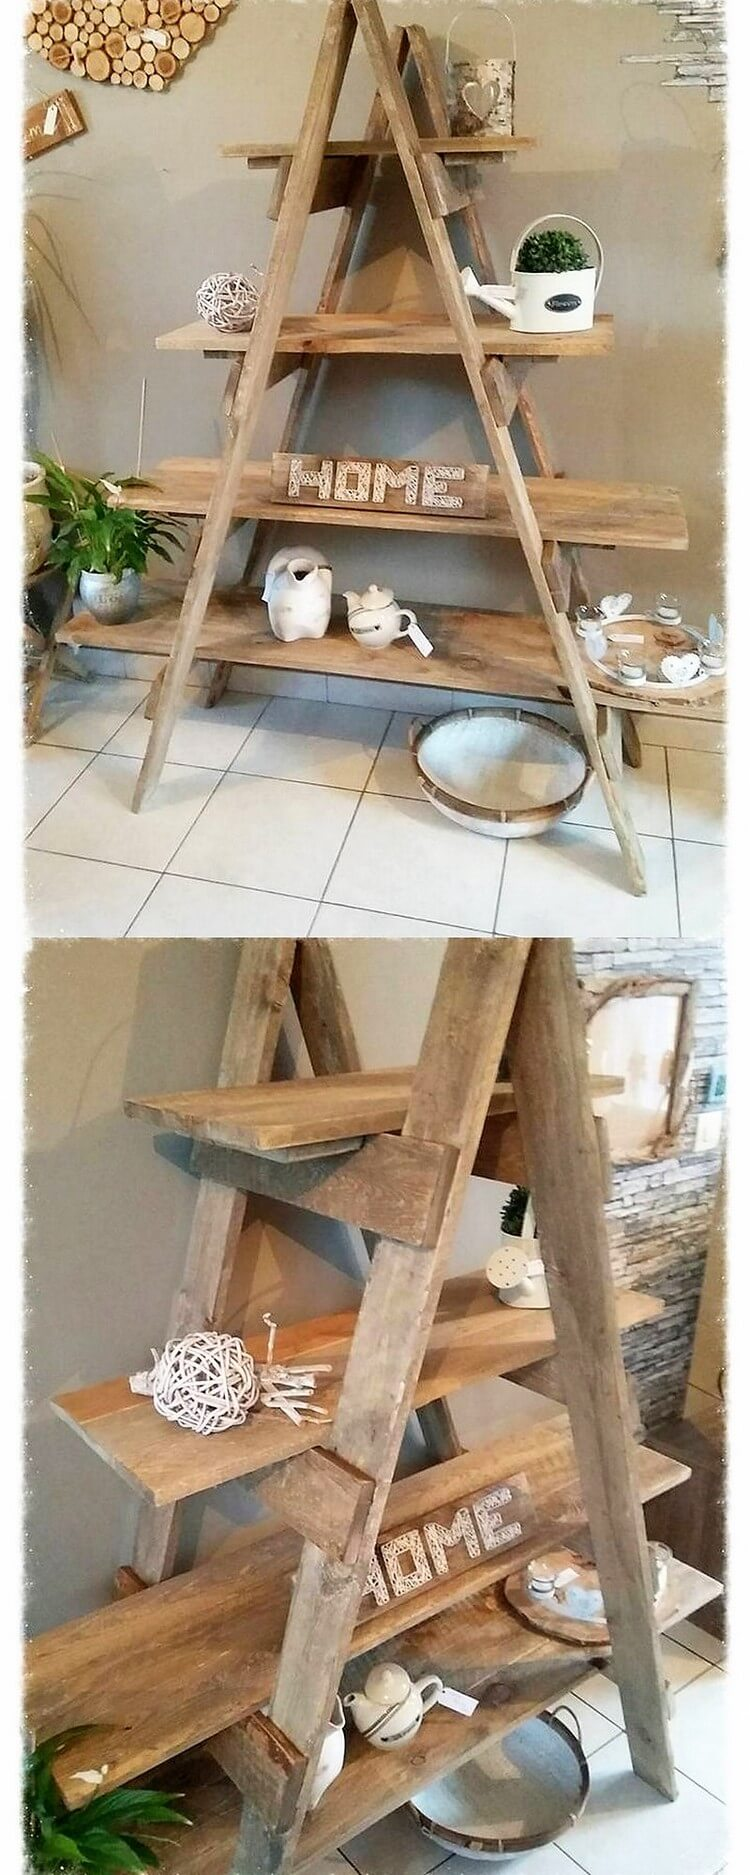 Best diy ideas for reusing old wooden pallets pallet for Old wooden ladder projects